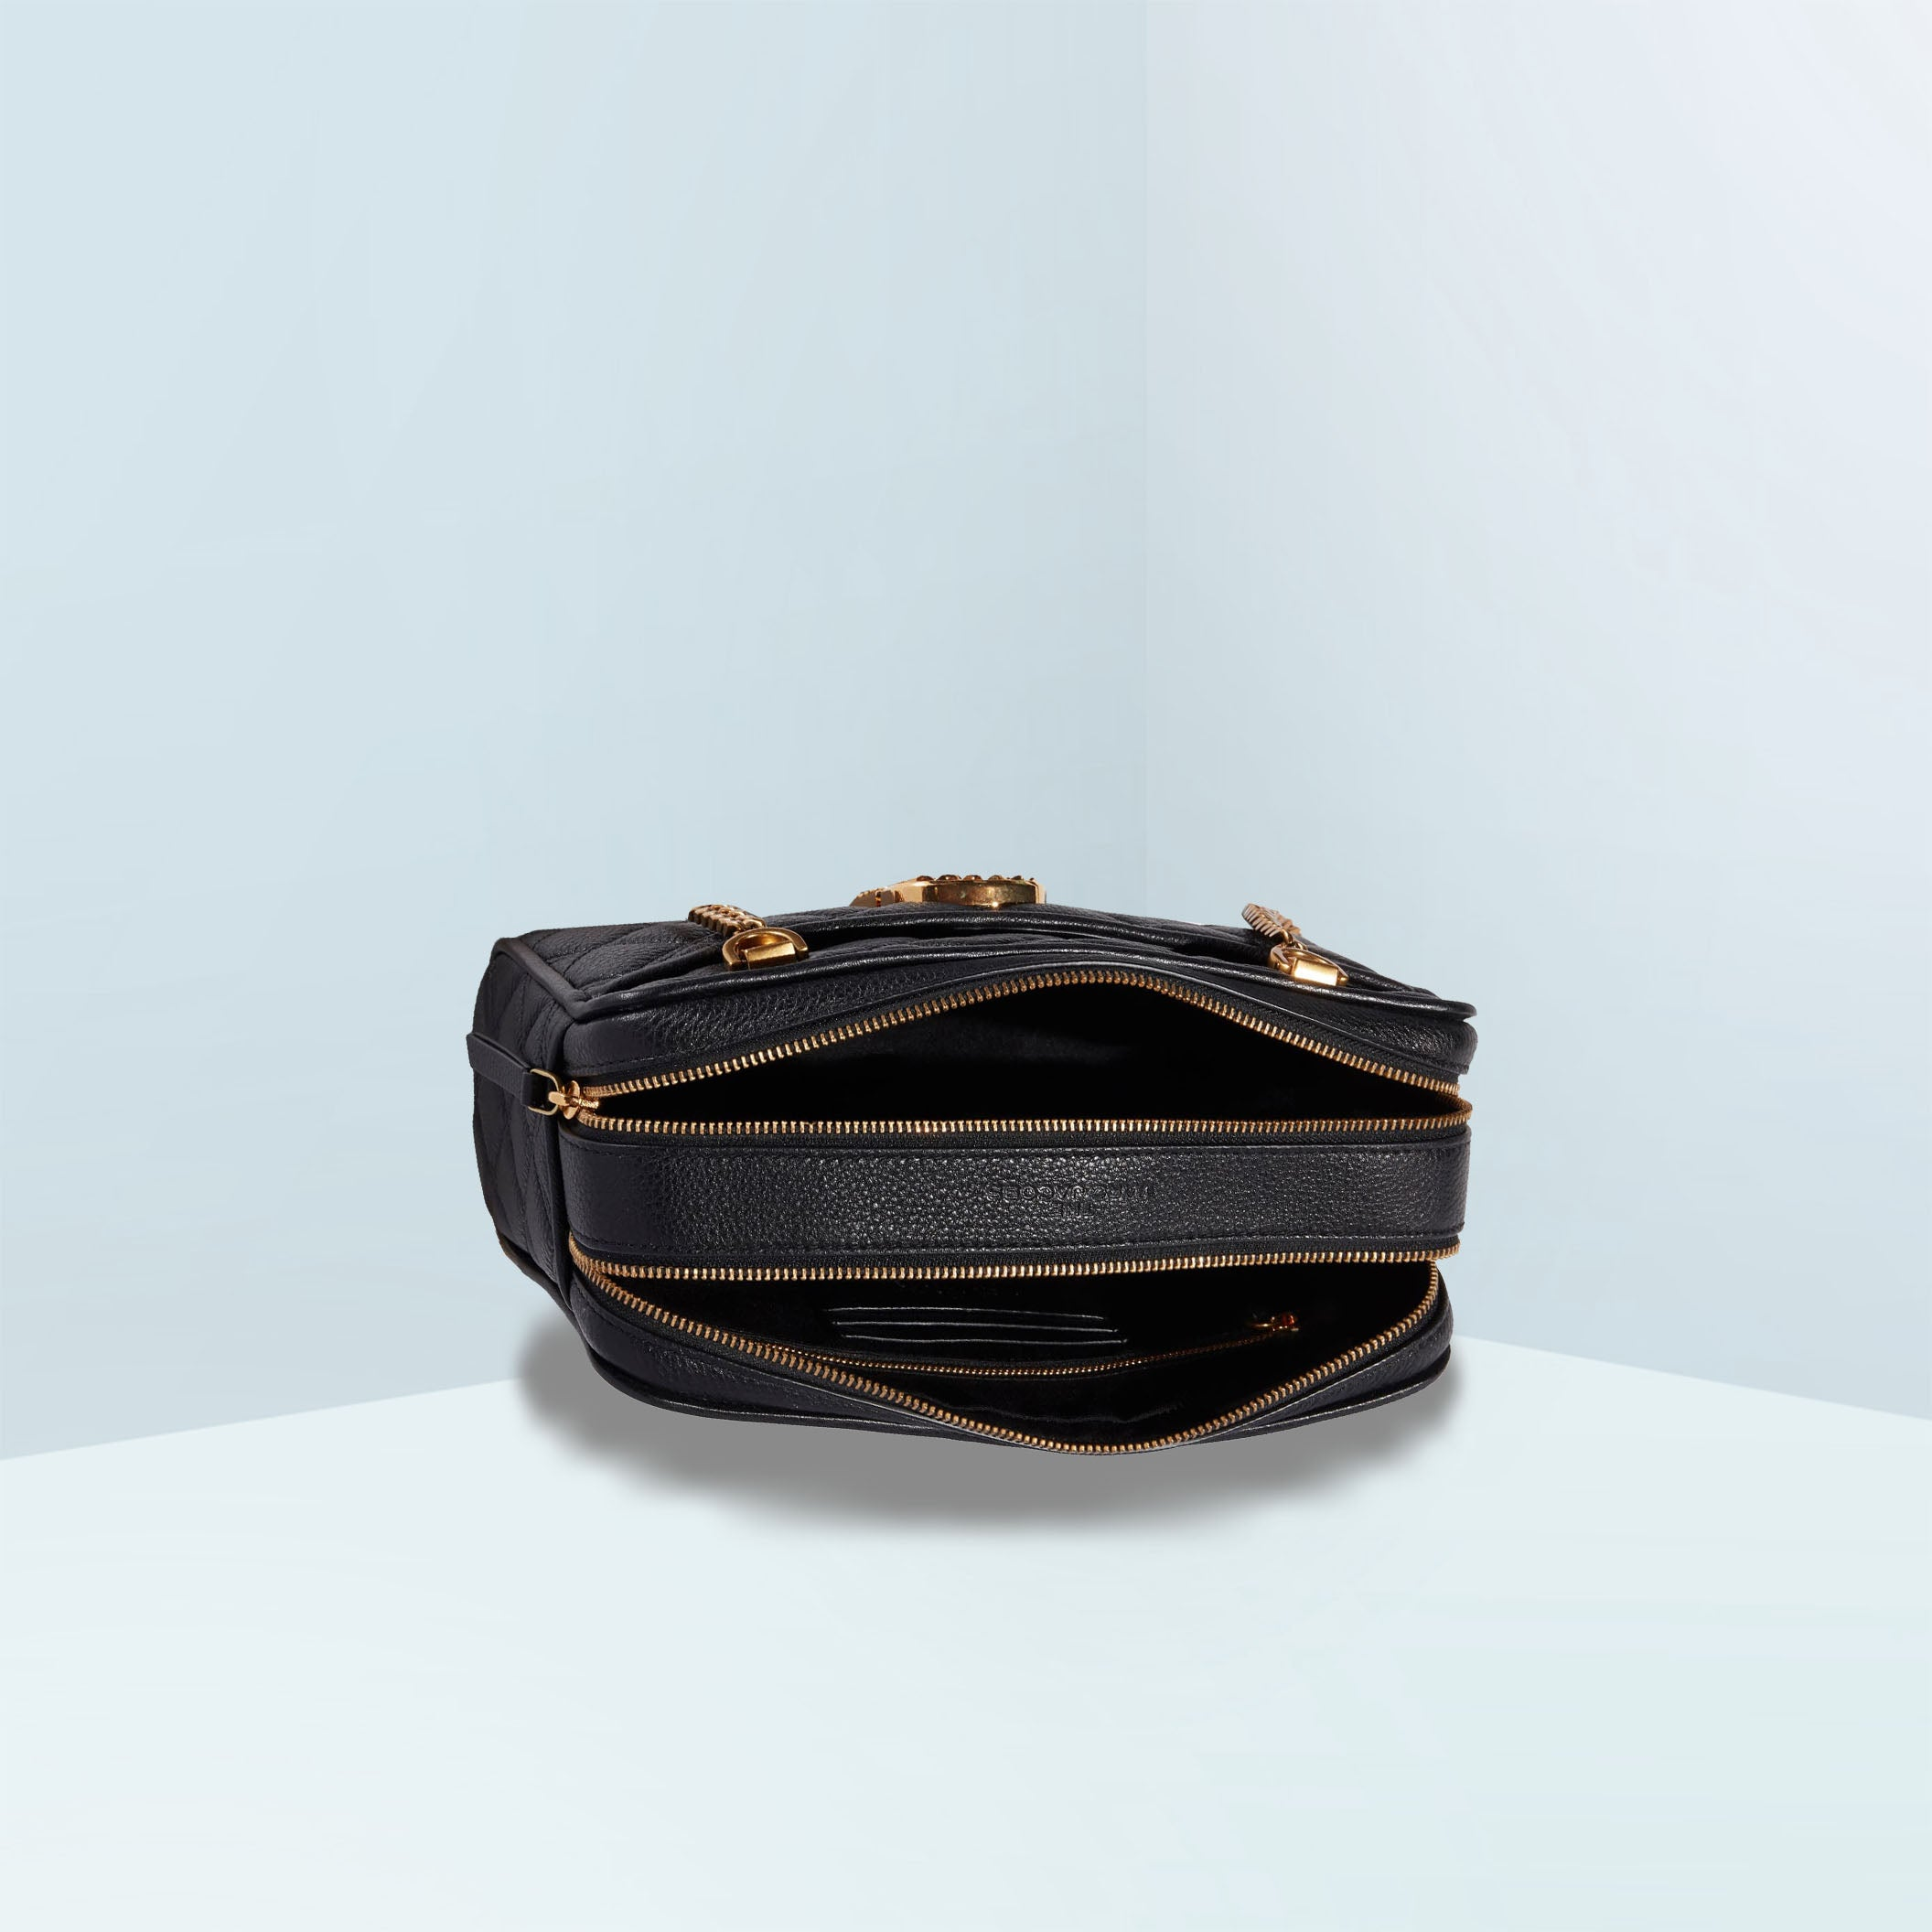 The Status Shoulder Bag